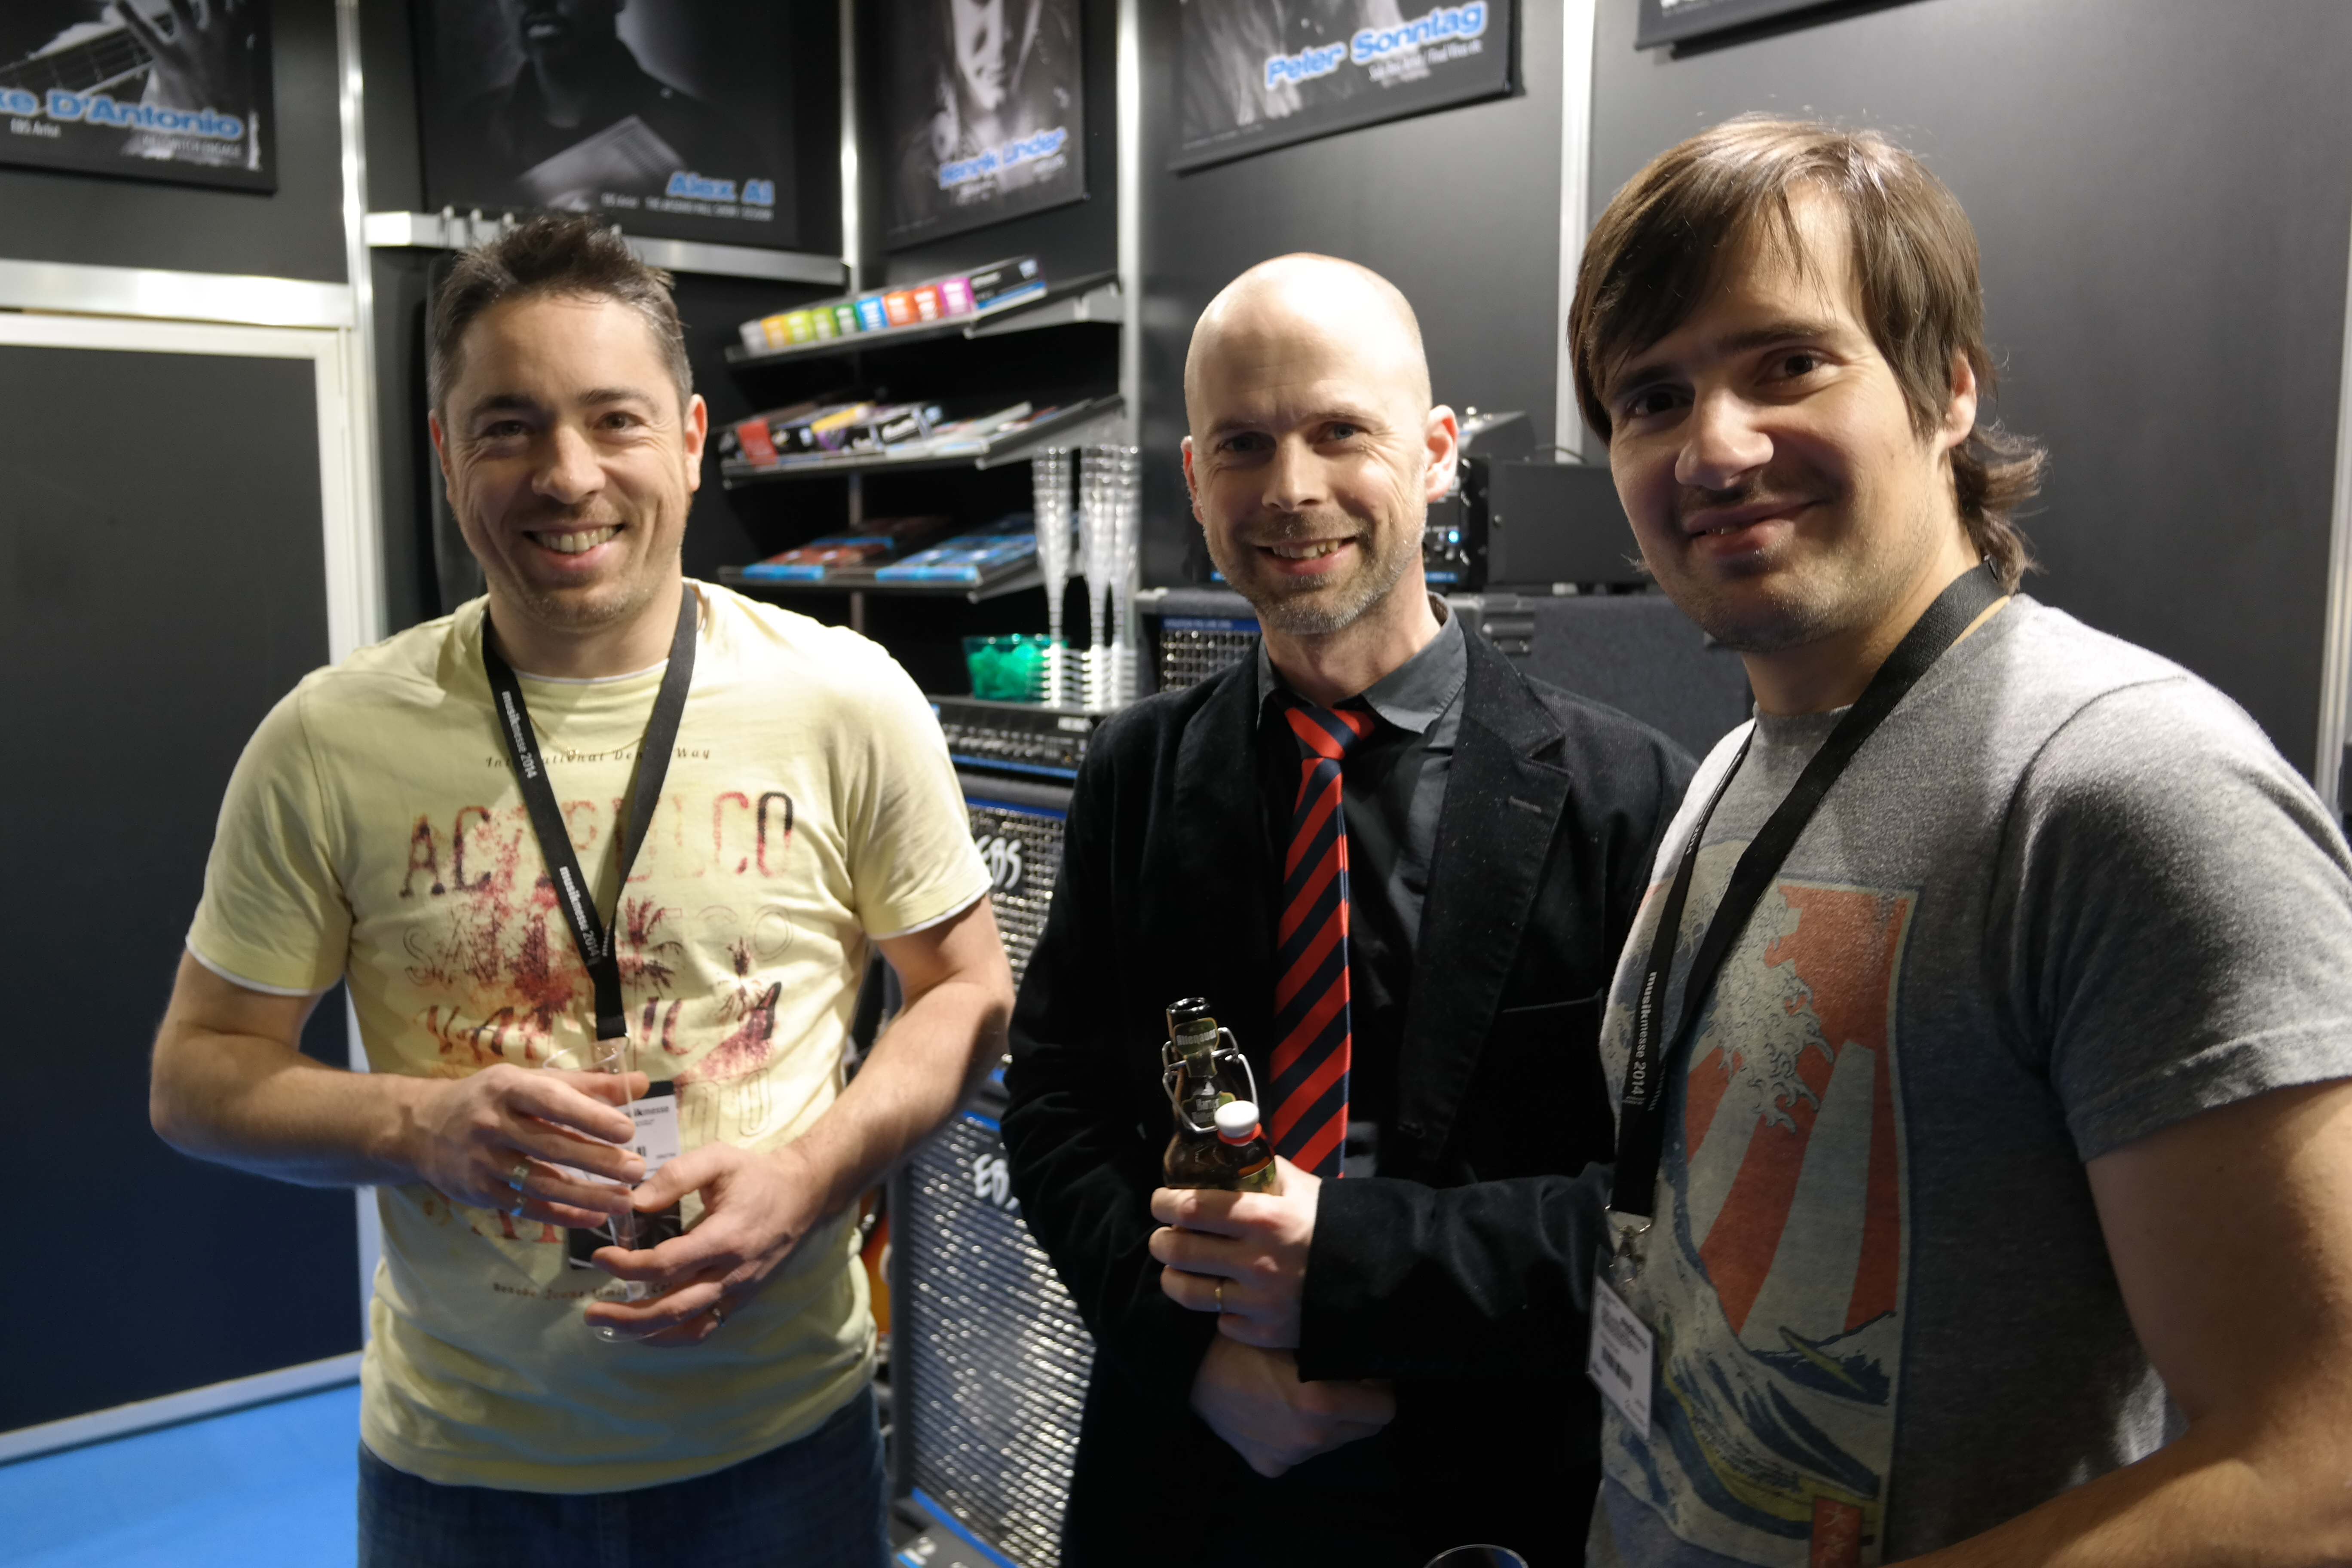 Julien and Nicolas from EBS new distributor Filling Distribution, France, with Ralf (in the middle) from EBS.